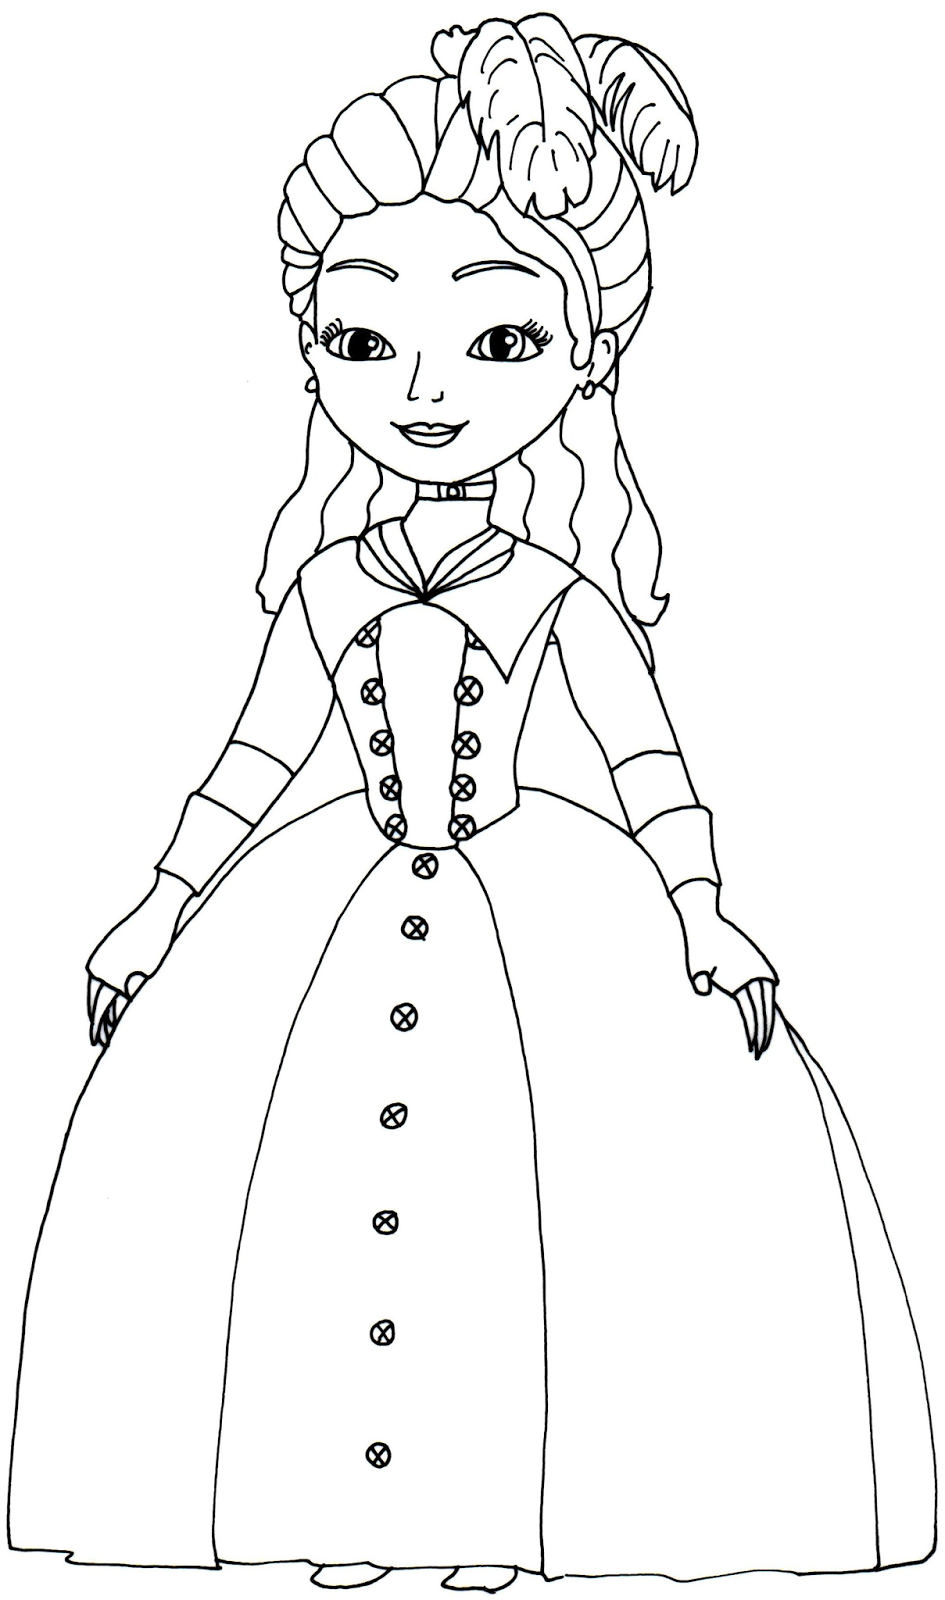 Sofia The First Coloring Pages Princess Clio Sofia The